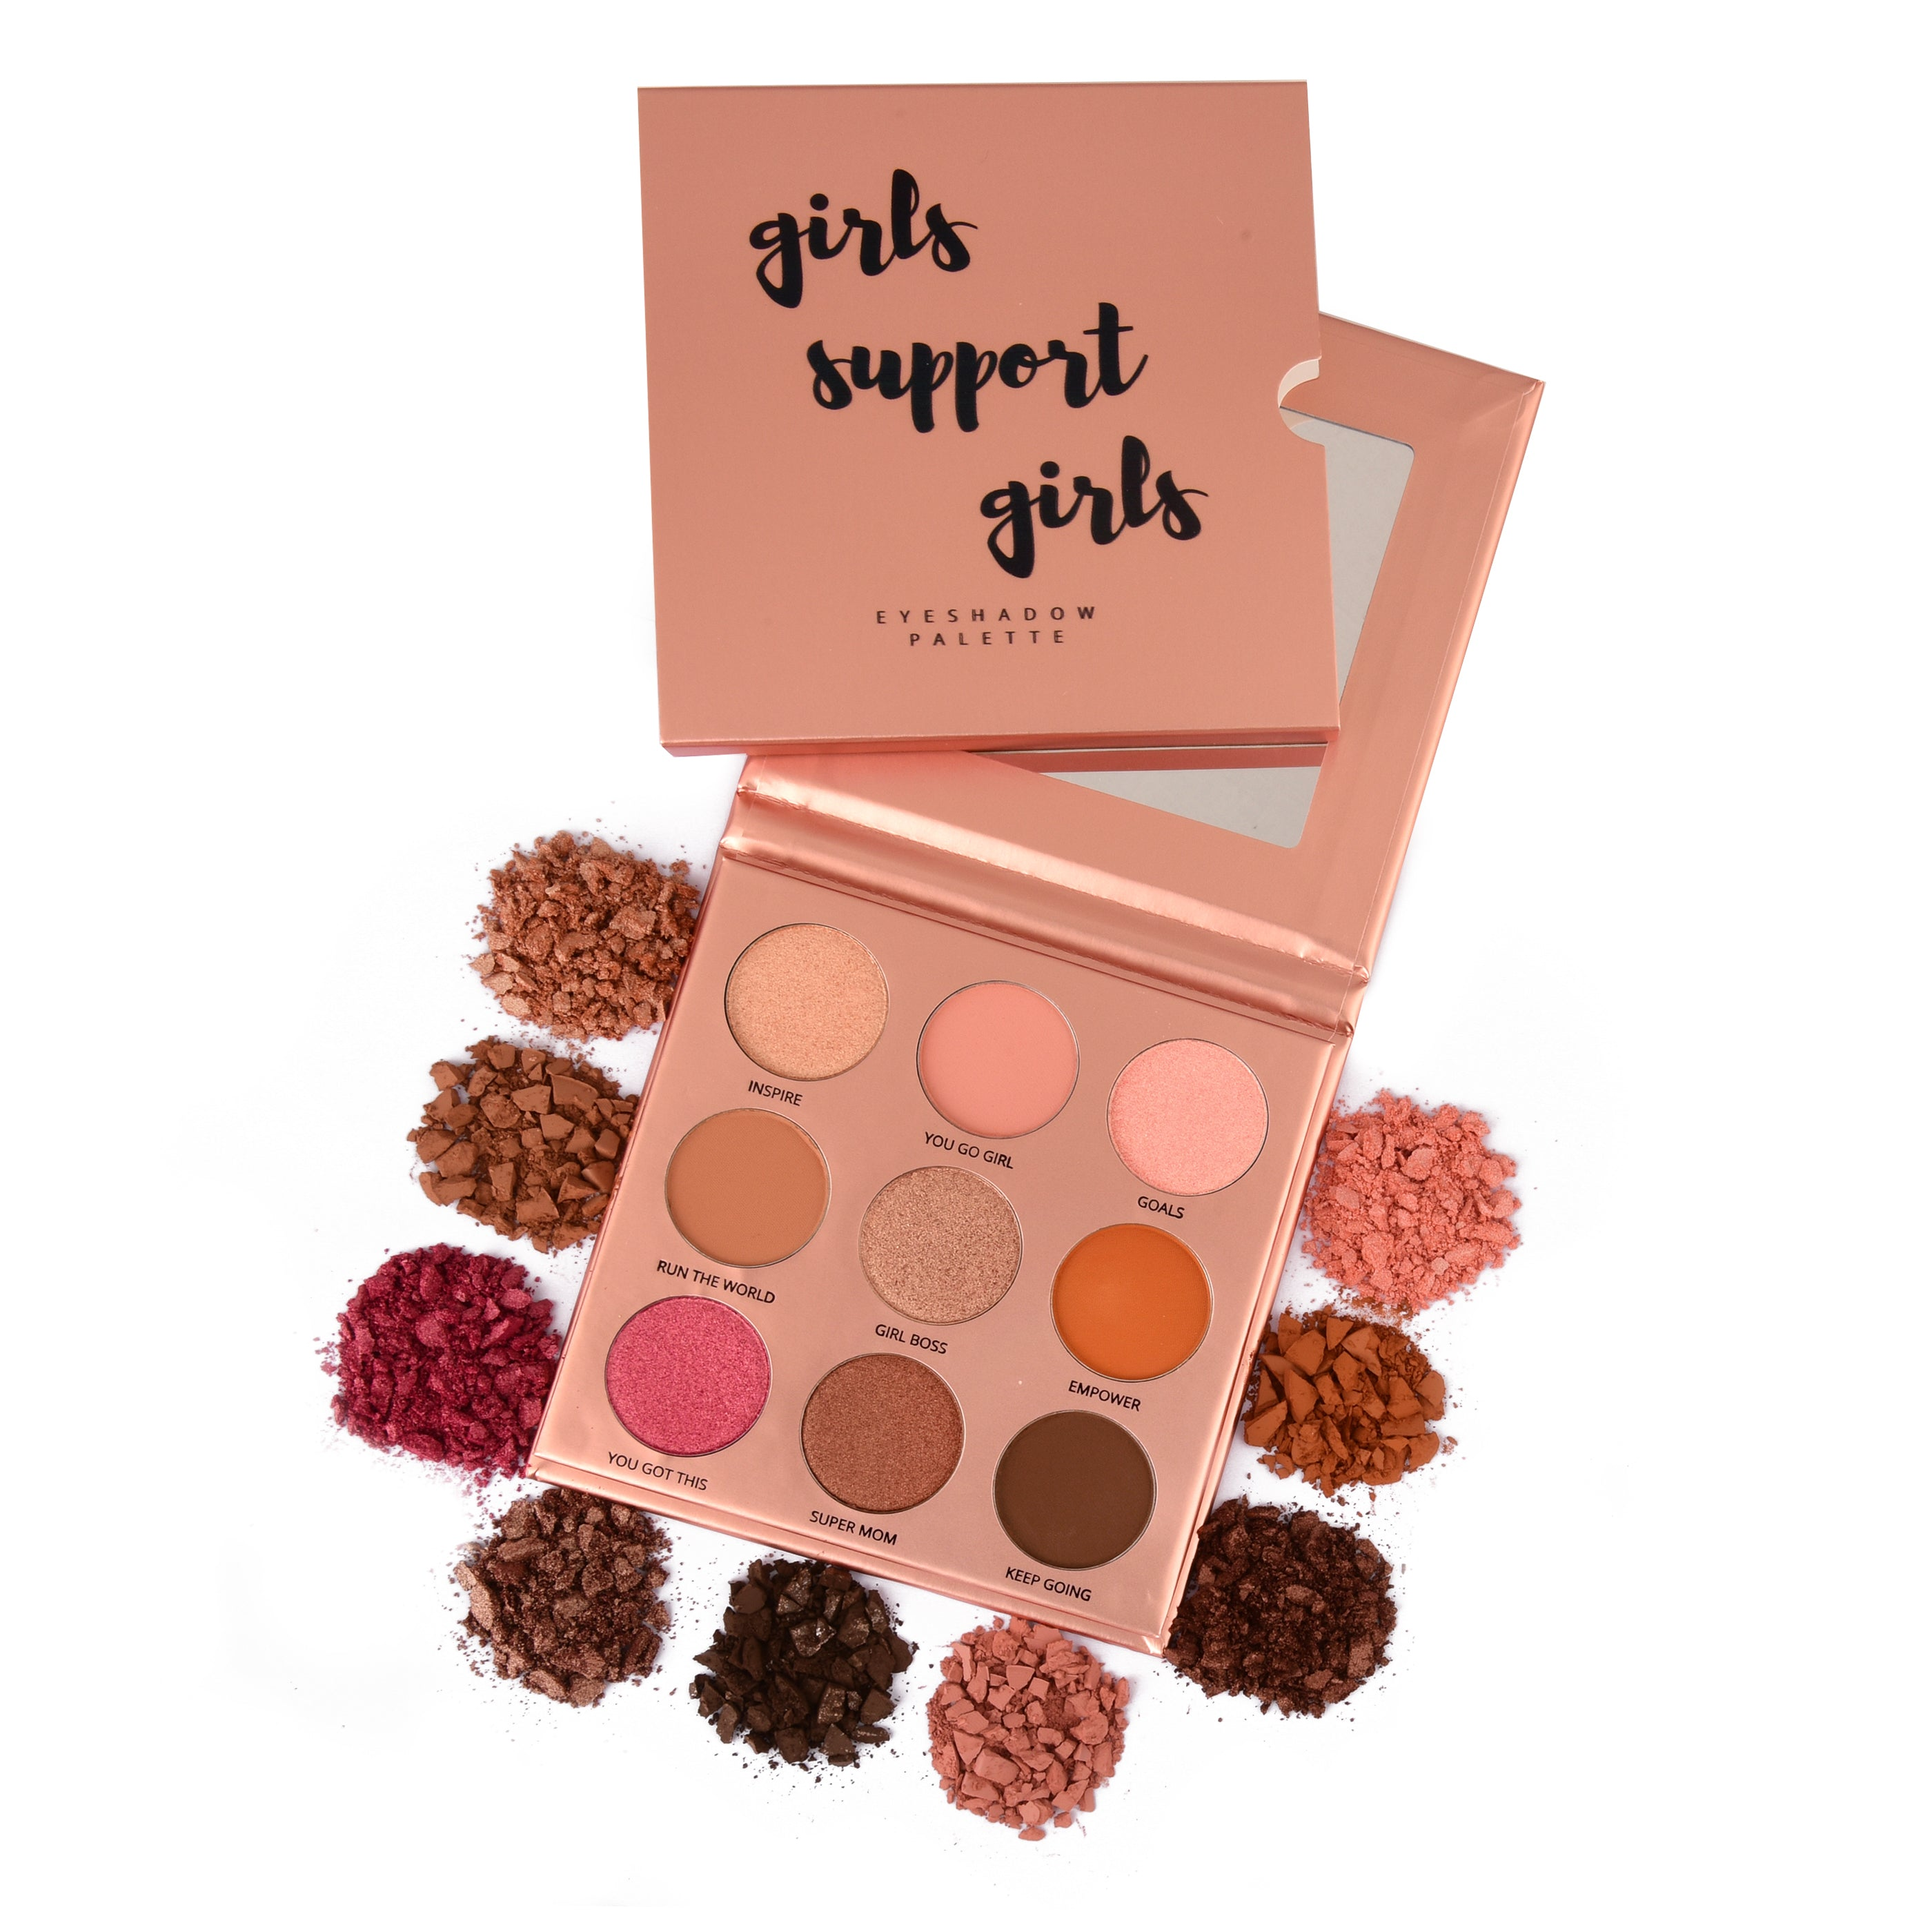 girls support girls palette